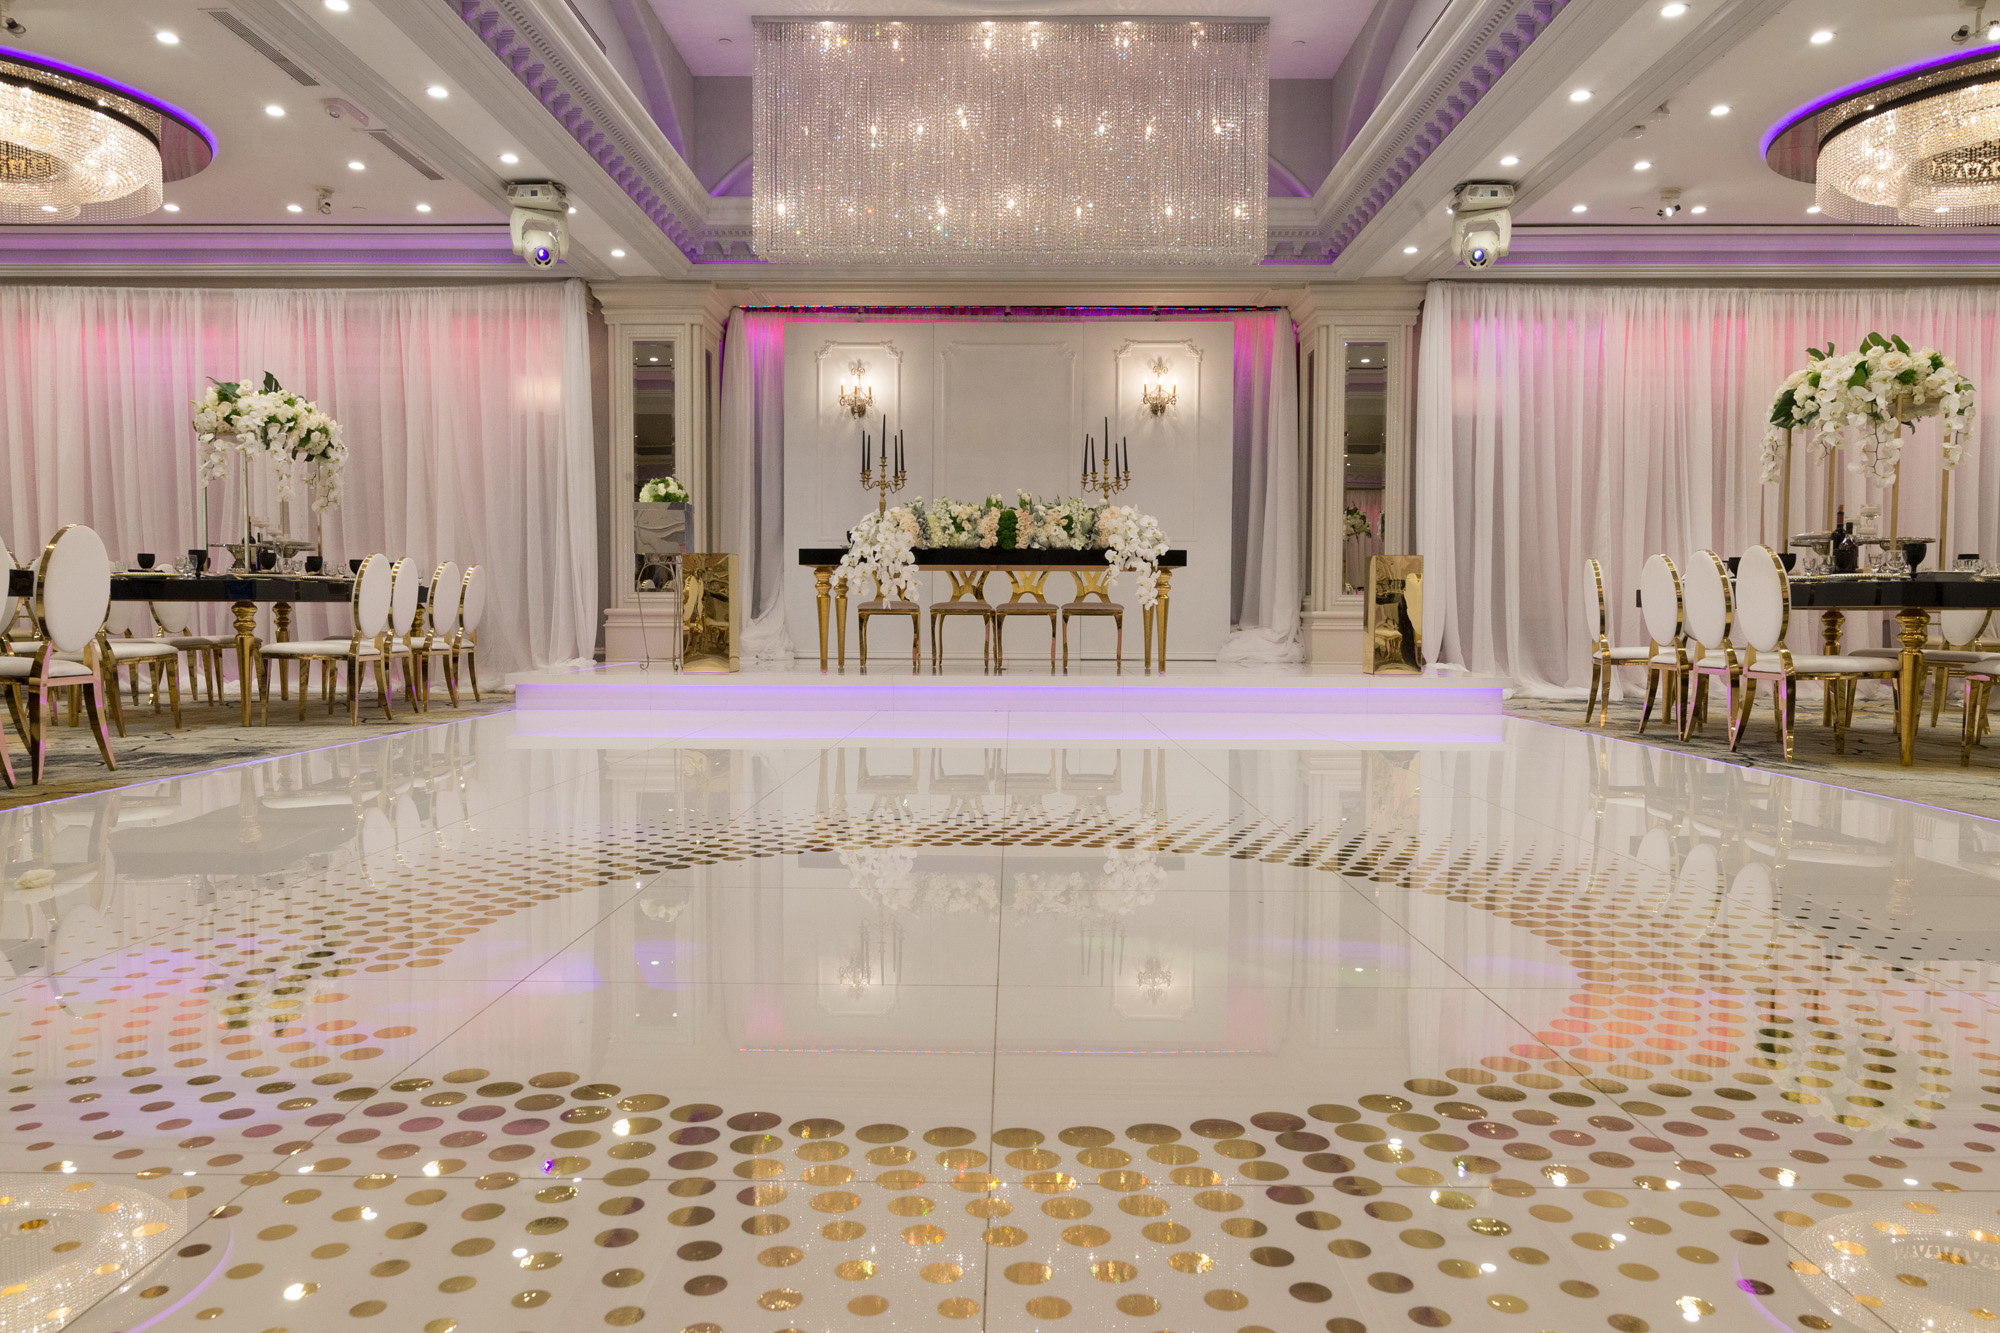 View More In Gallery Panoramic Of Wedding Venue: Elegant Wedding Venues Ca At Reisefeber.org